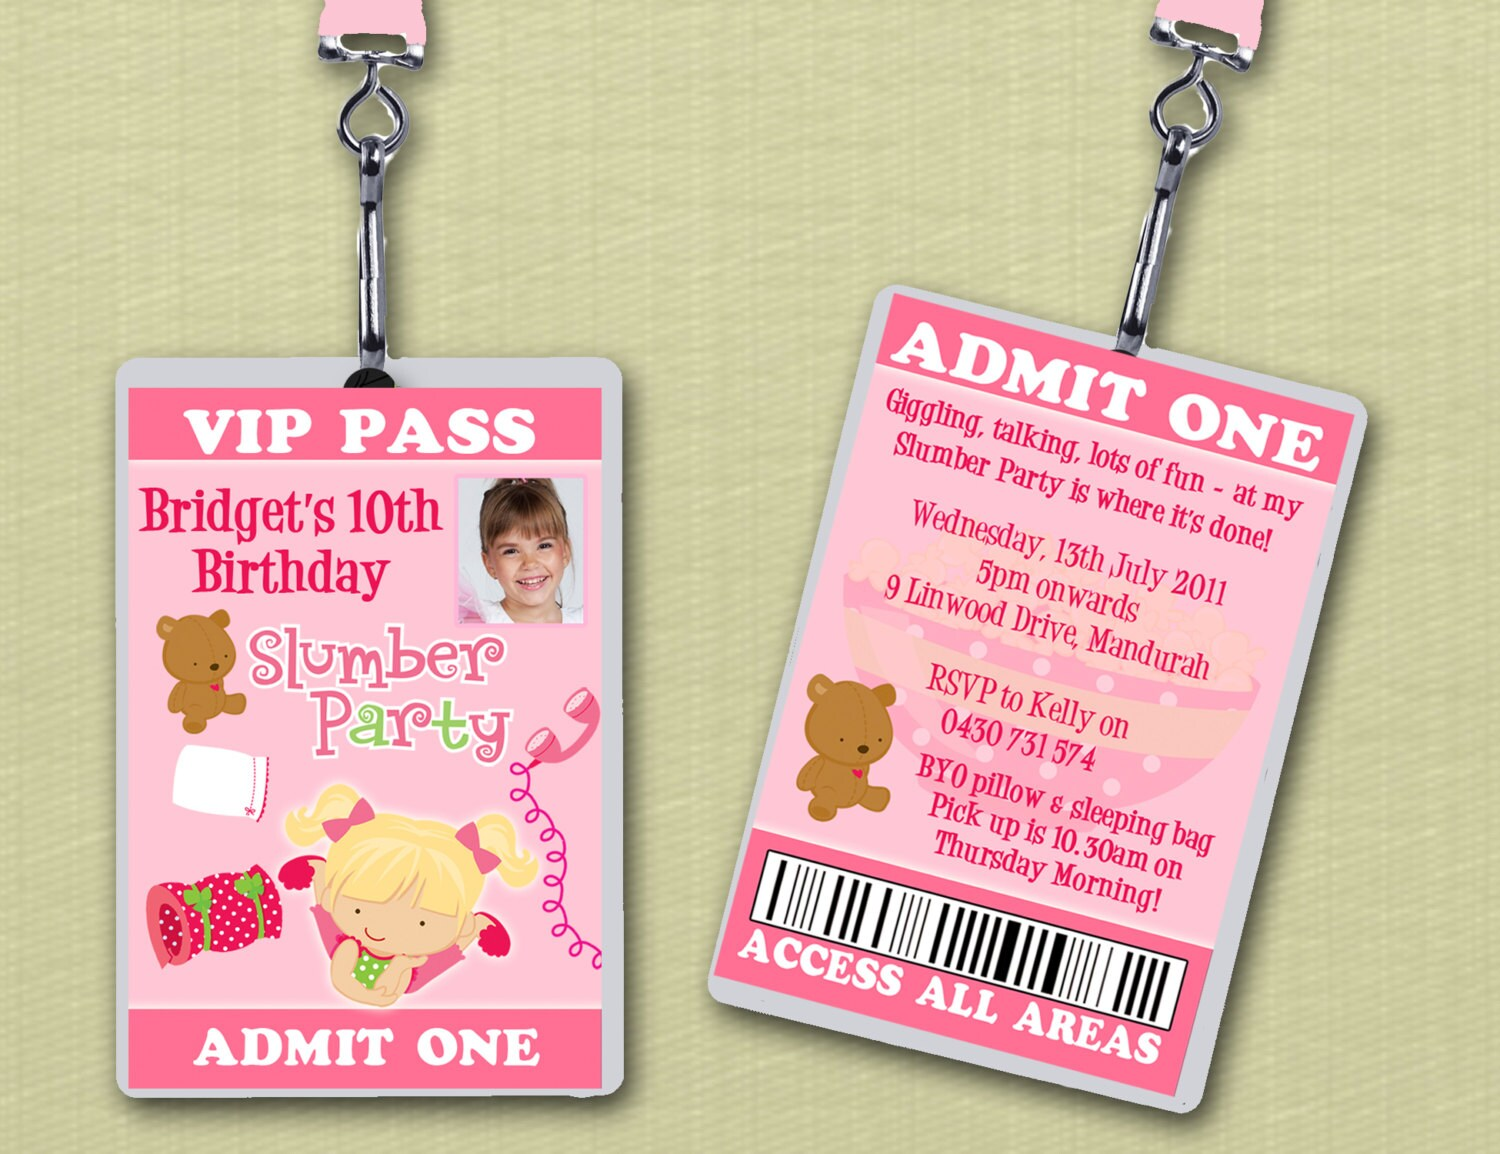 Pamper Party Invites is perfect invitations layout